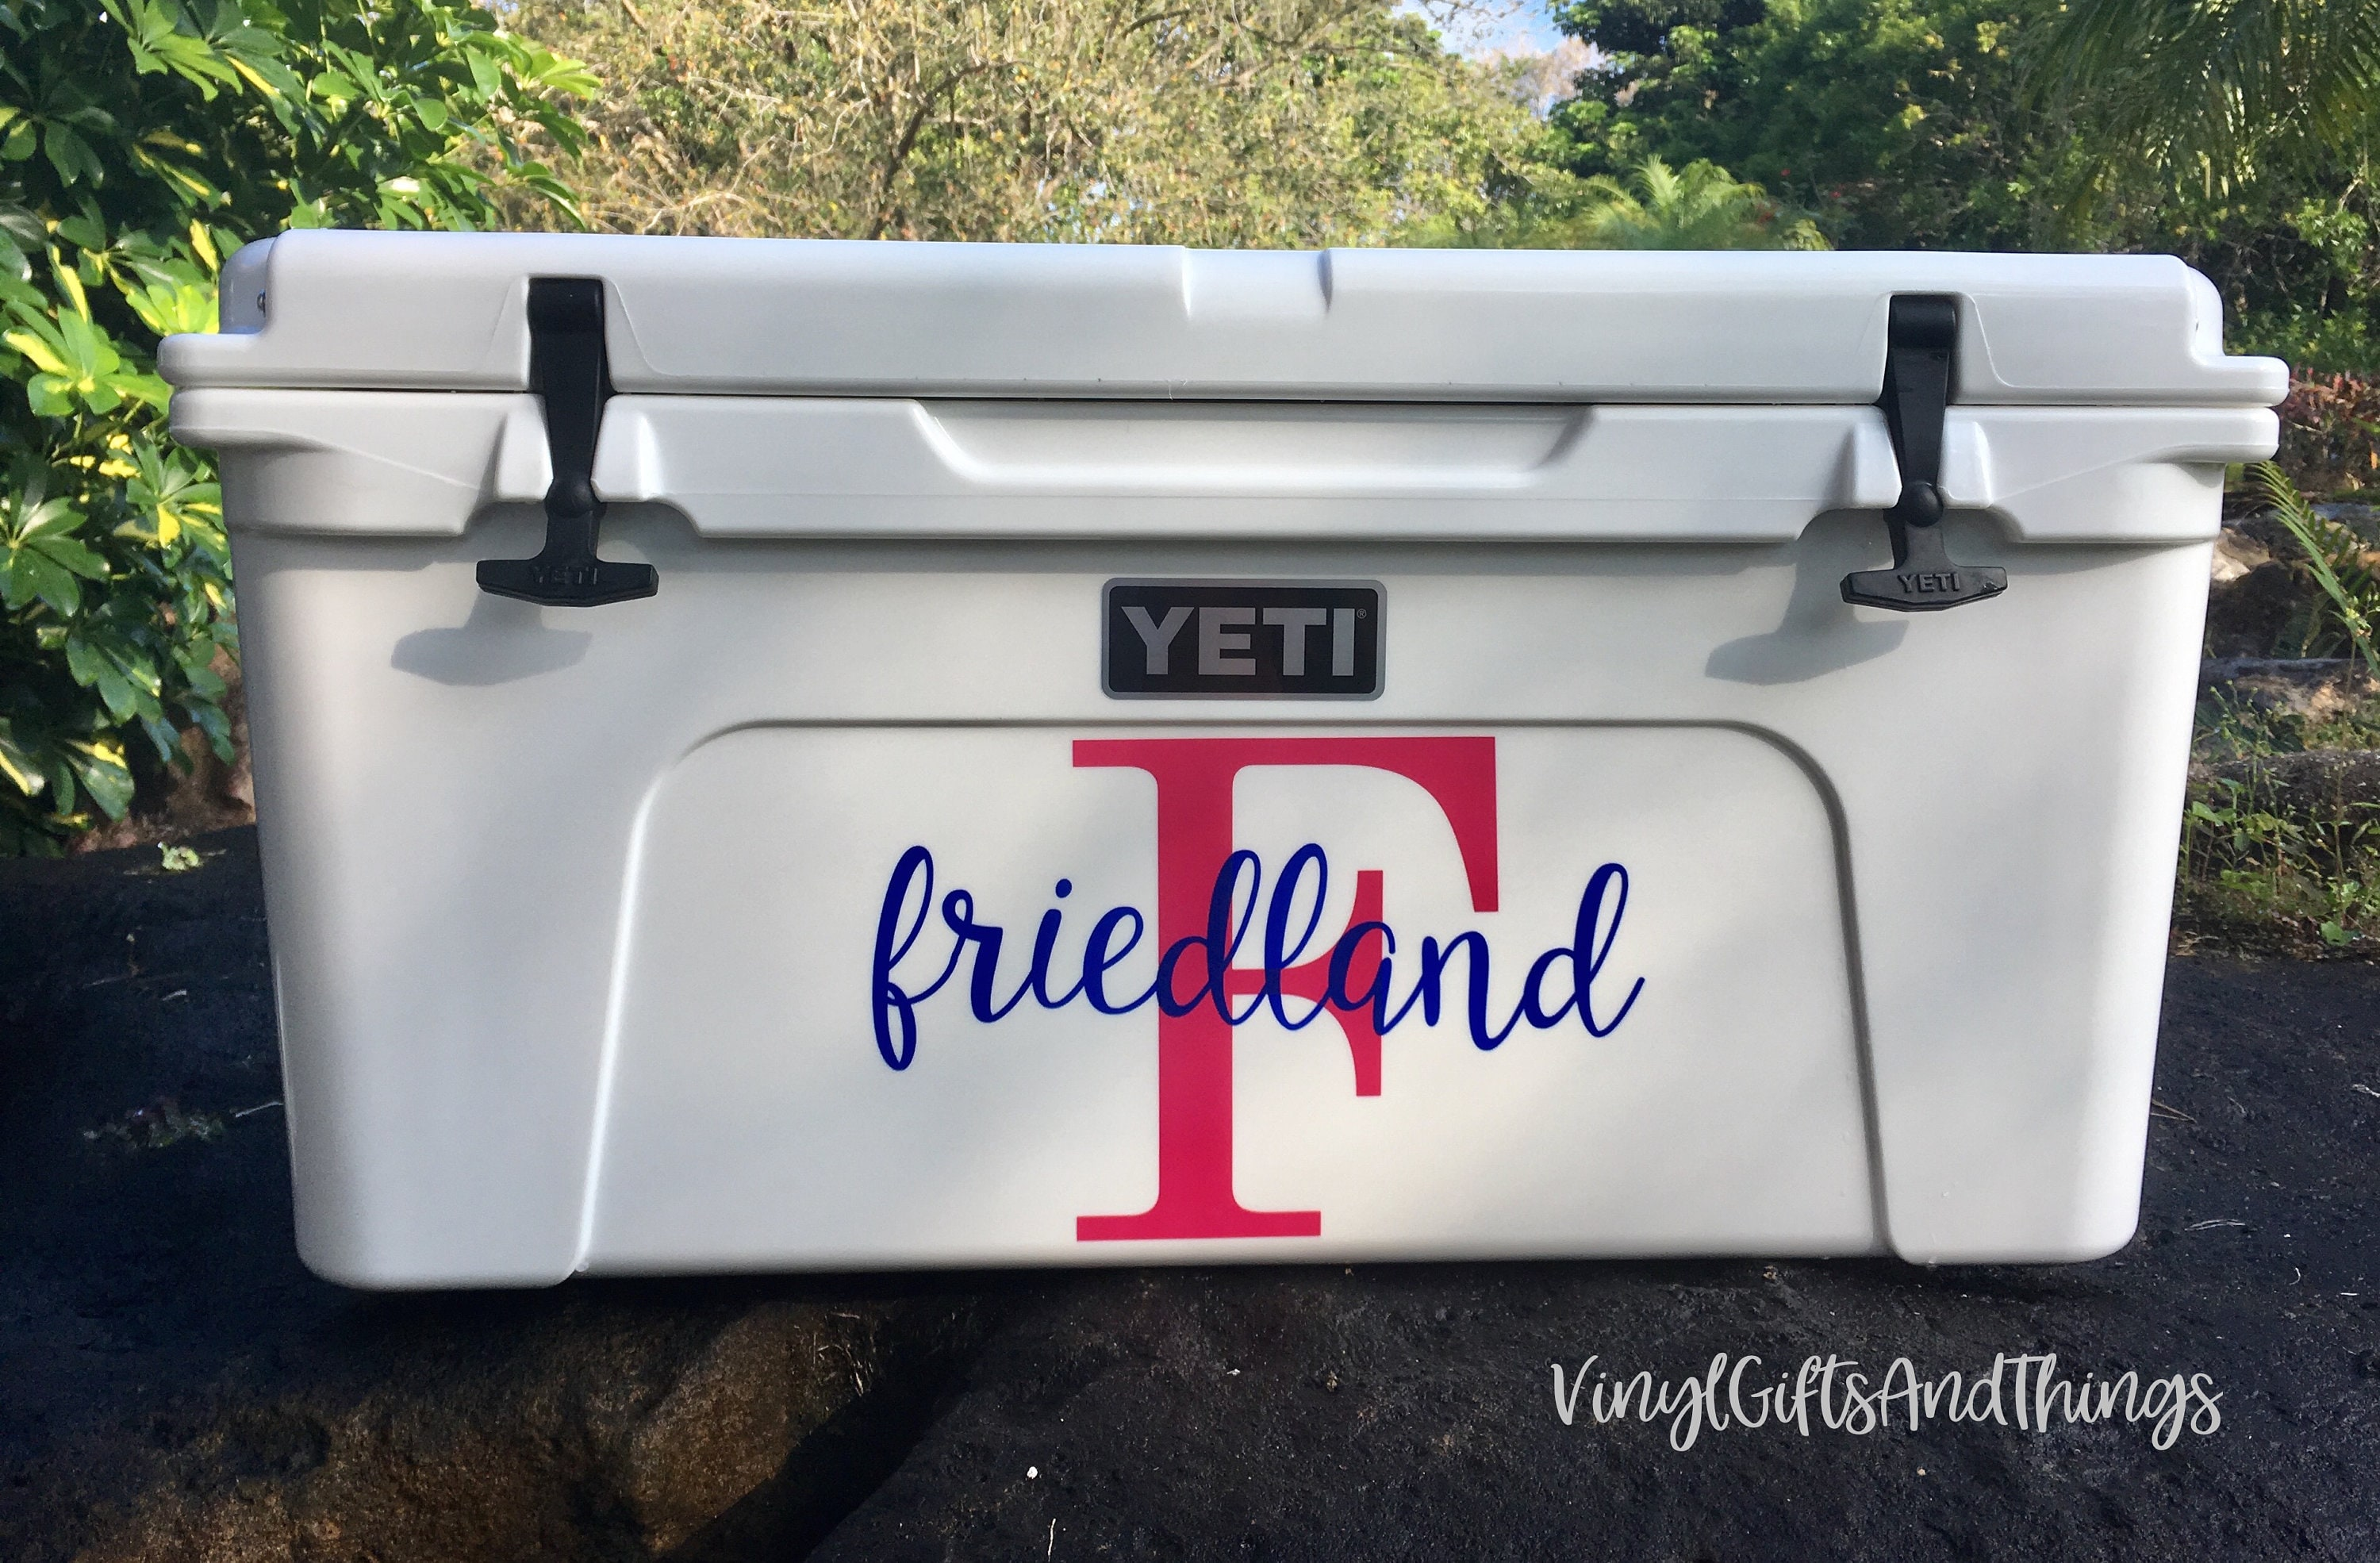 Personalized Yeti Cooler Decals Personalized Rtic Cooler Decals Custom Yeti Decal Custom Rtic Decal